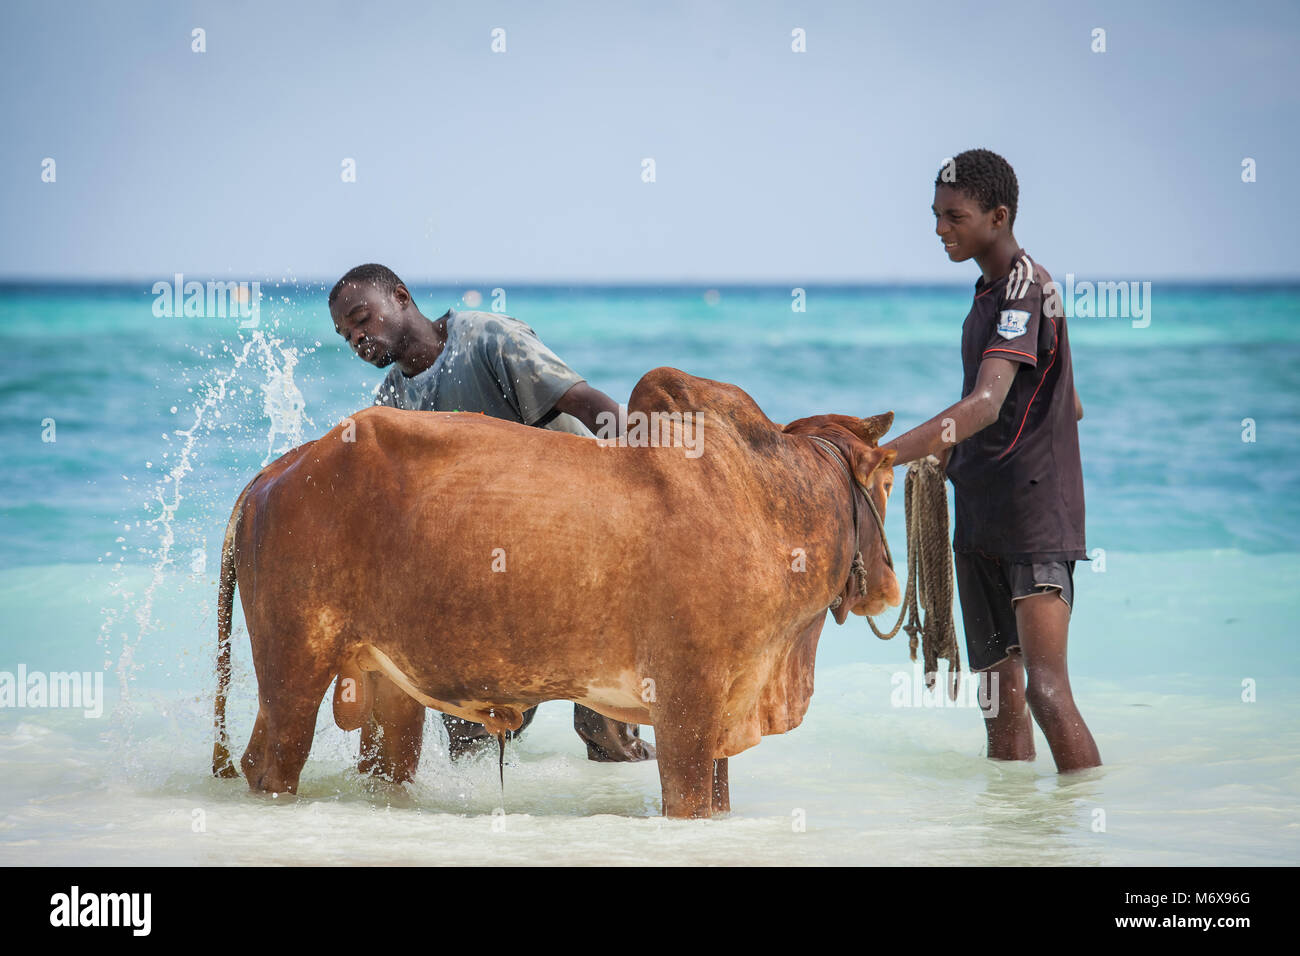 Men washing cow in the sea on beach in Stone Town, Zanzibar Island,Tanzania. - Stock Image